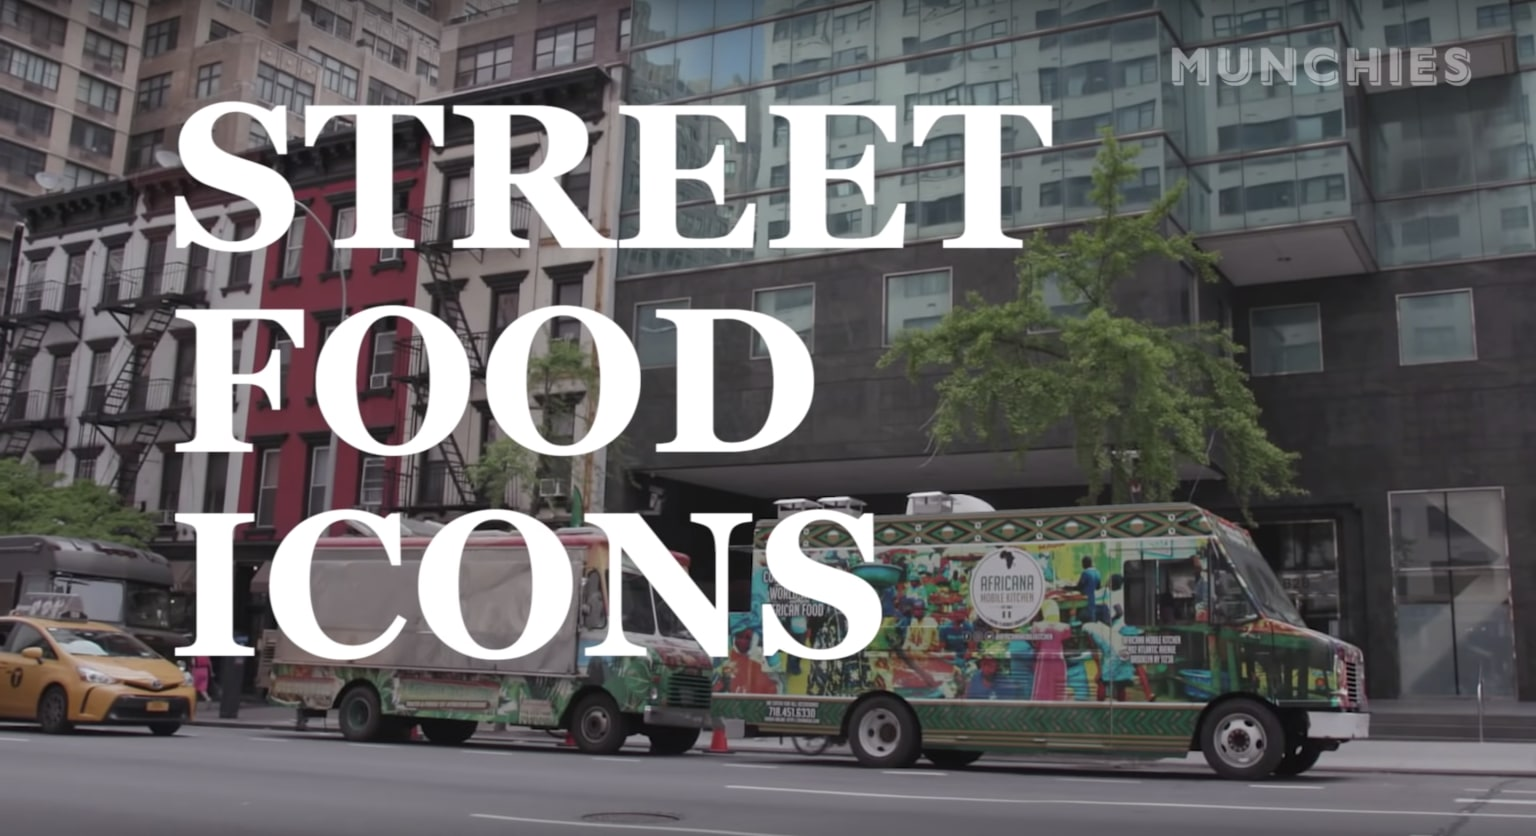 How One Food Truck Gives a Sense of Home - Street Food Icons